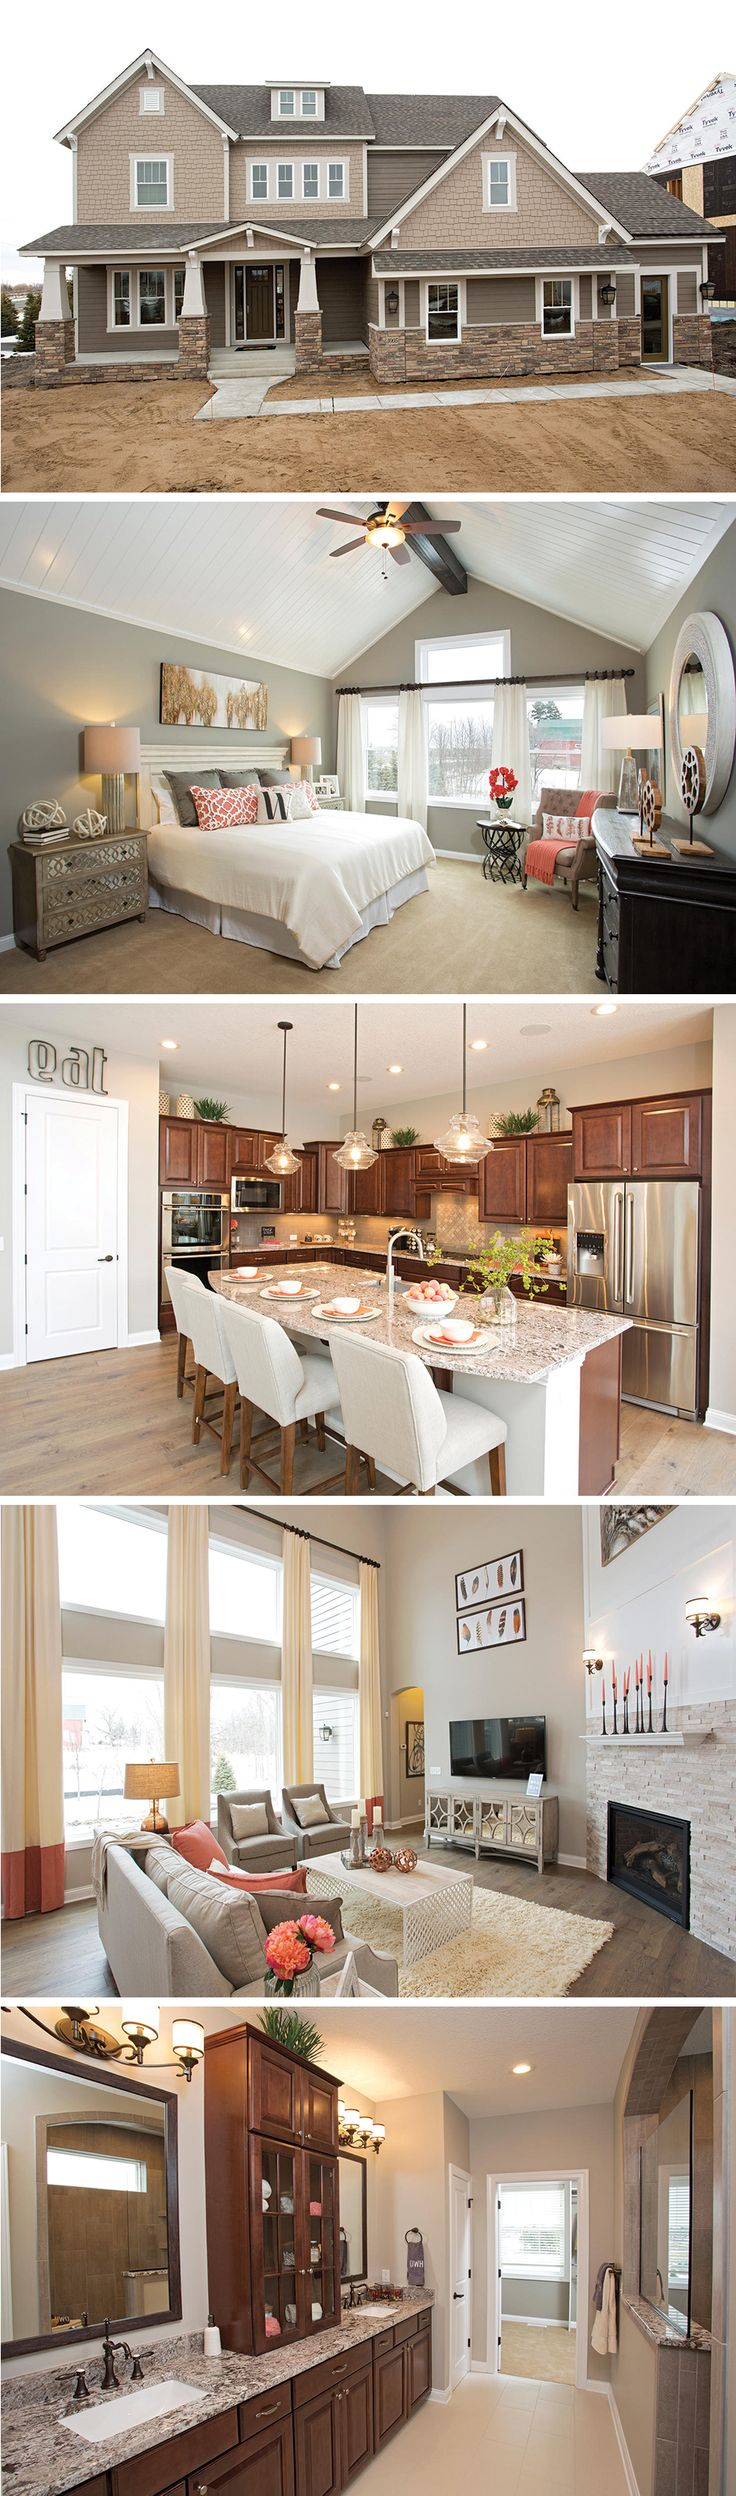 The Hammett by David Weekley Homes in Enclave at Medina is a floorplan featuring high ceilings, a large open kitchen and family room, and a private backyard patio. Custom home upgrades include a covered porch, a sunroom or a freestanding tub in the owners bathroom